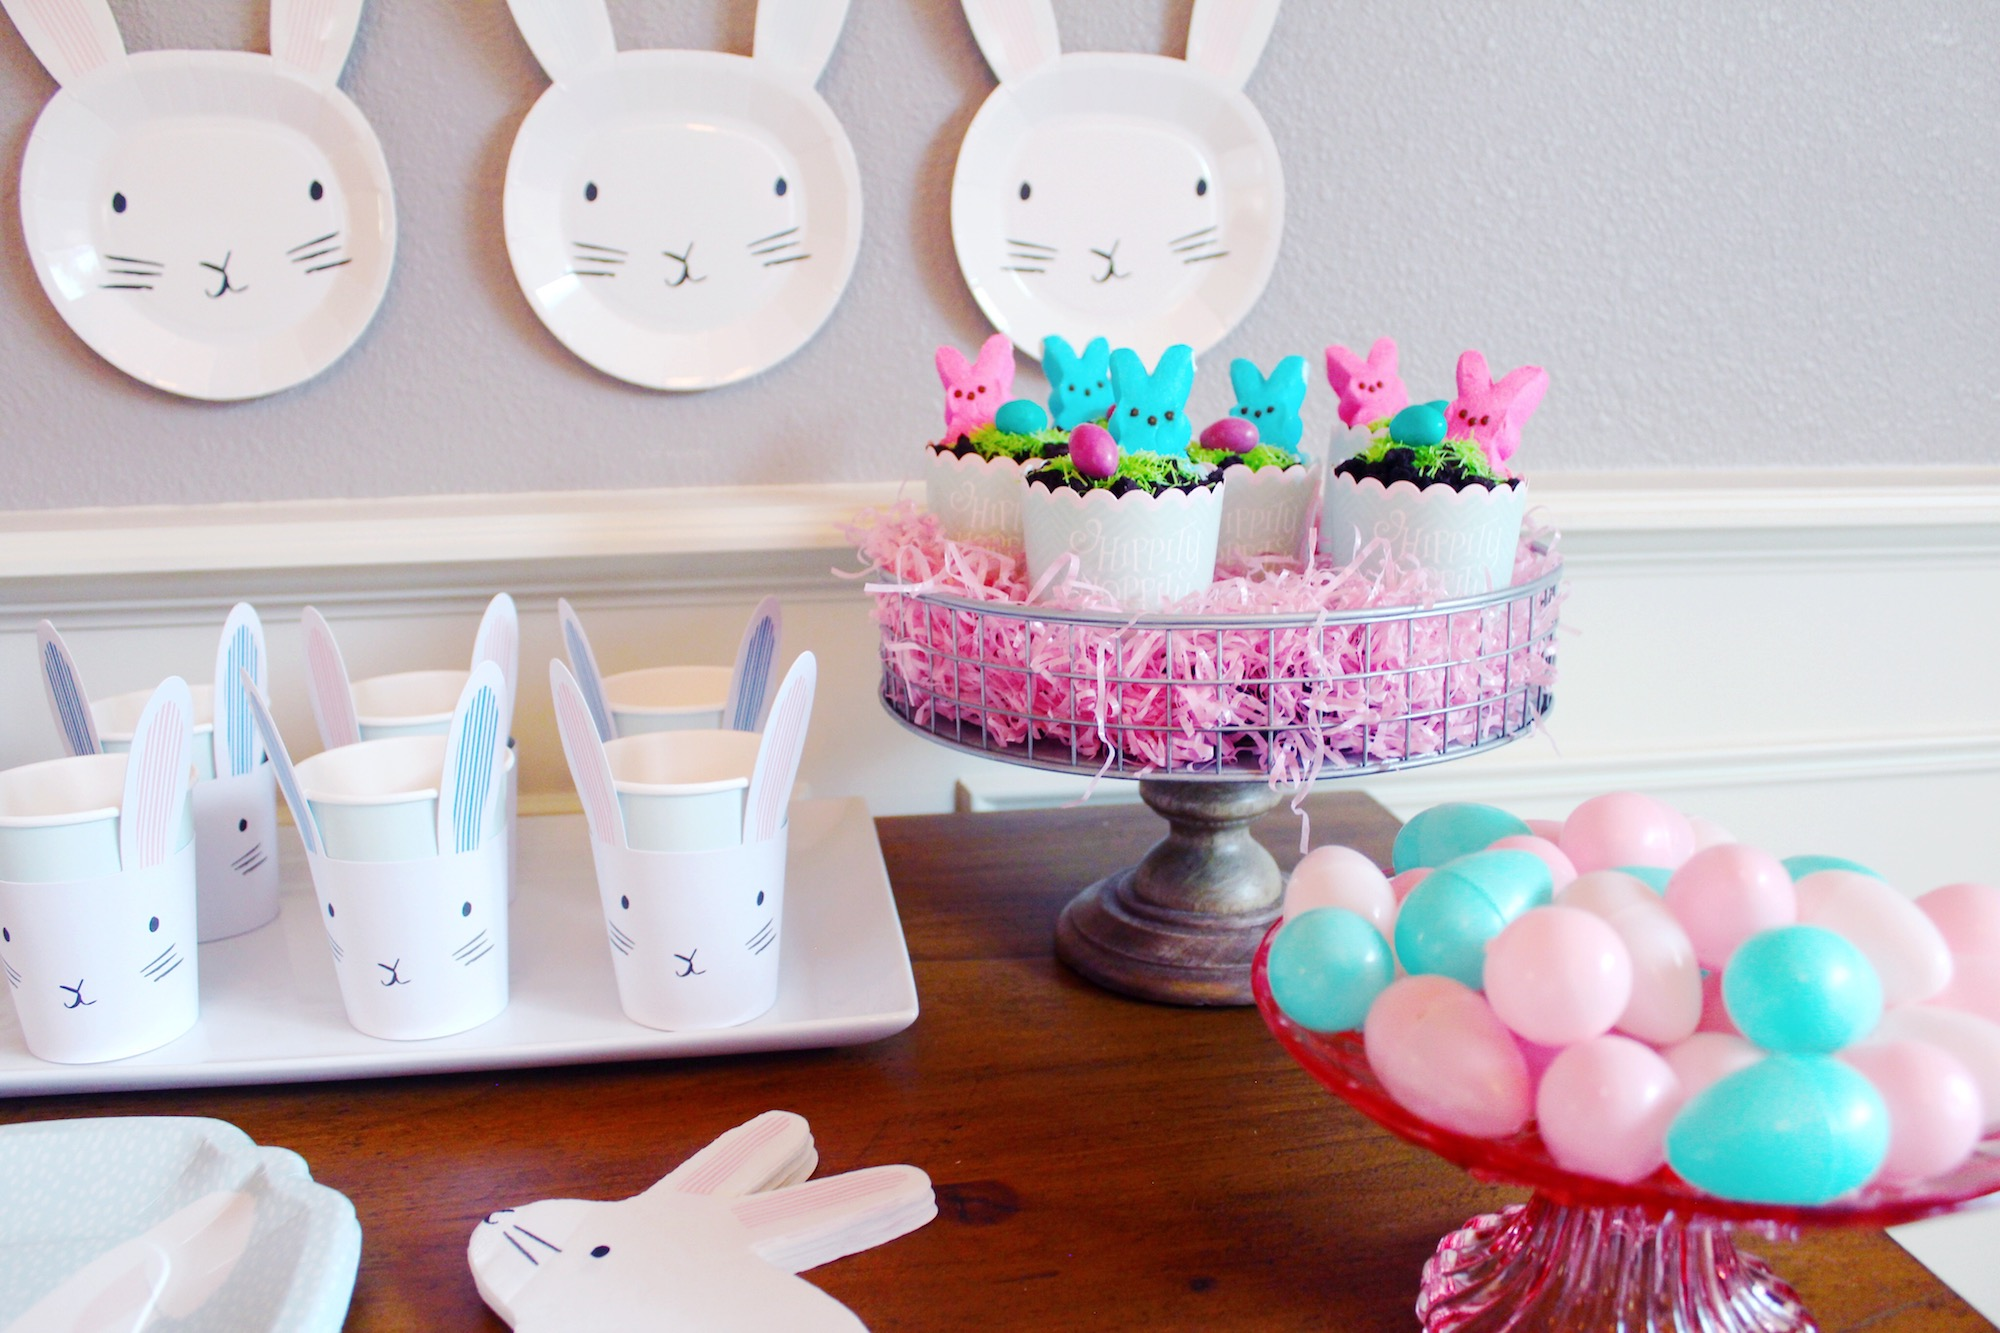 Easter Party Decor Ideas_Bunnies Eggs_Paper Goods_Treats_Design Organize Party.JPG